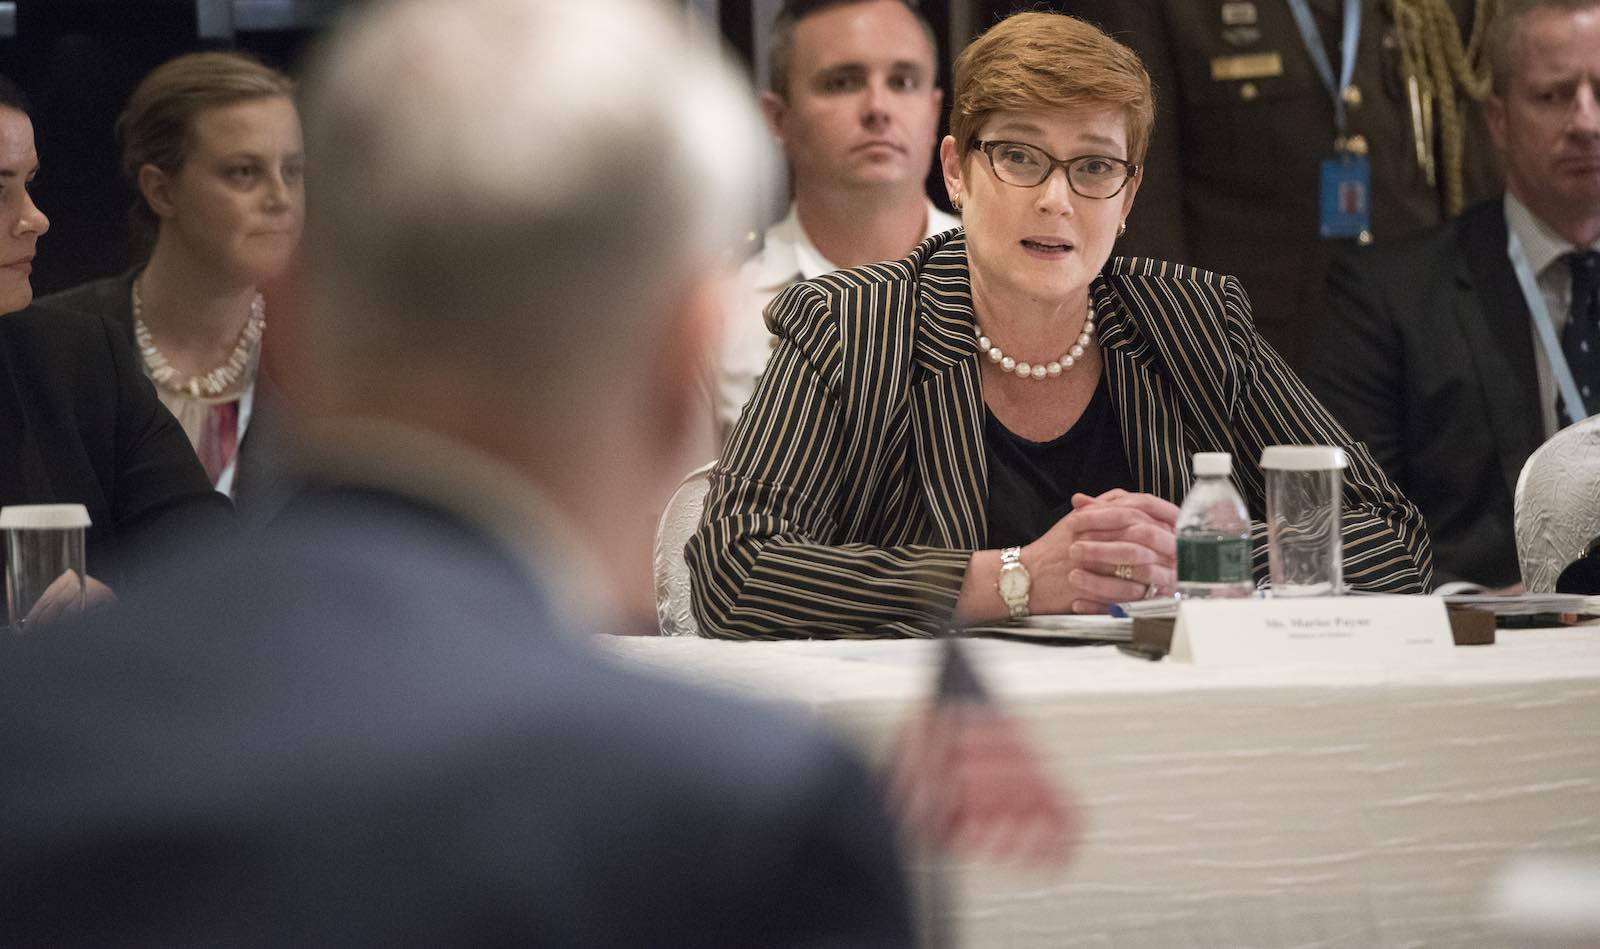 Foreign Minister Marise Payne (Photo: secdef/Flickr)